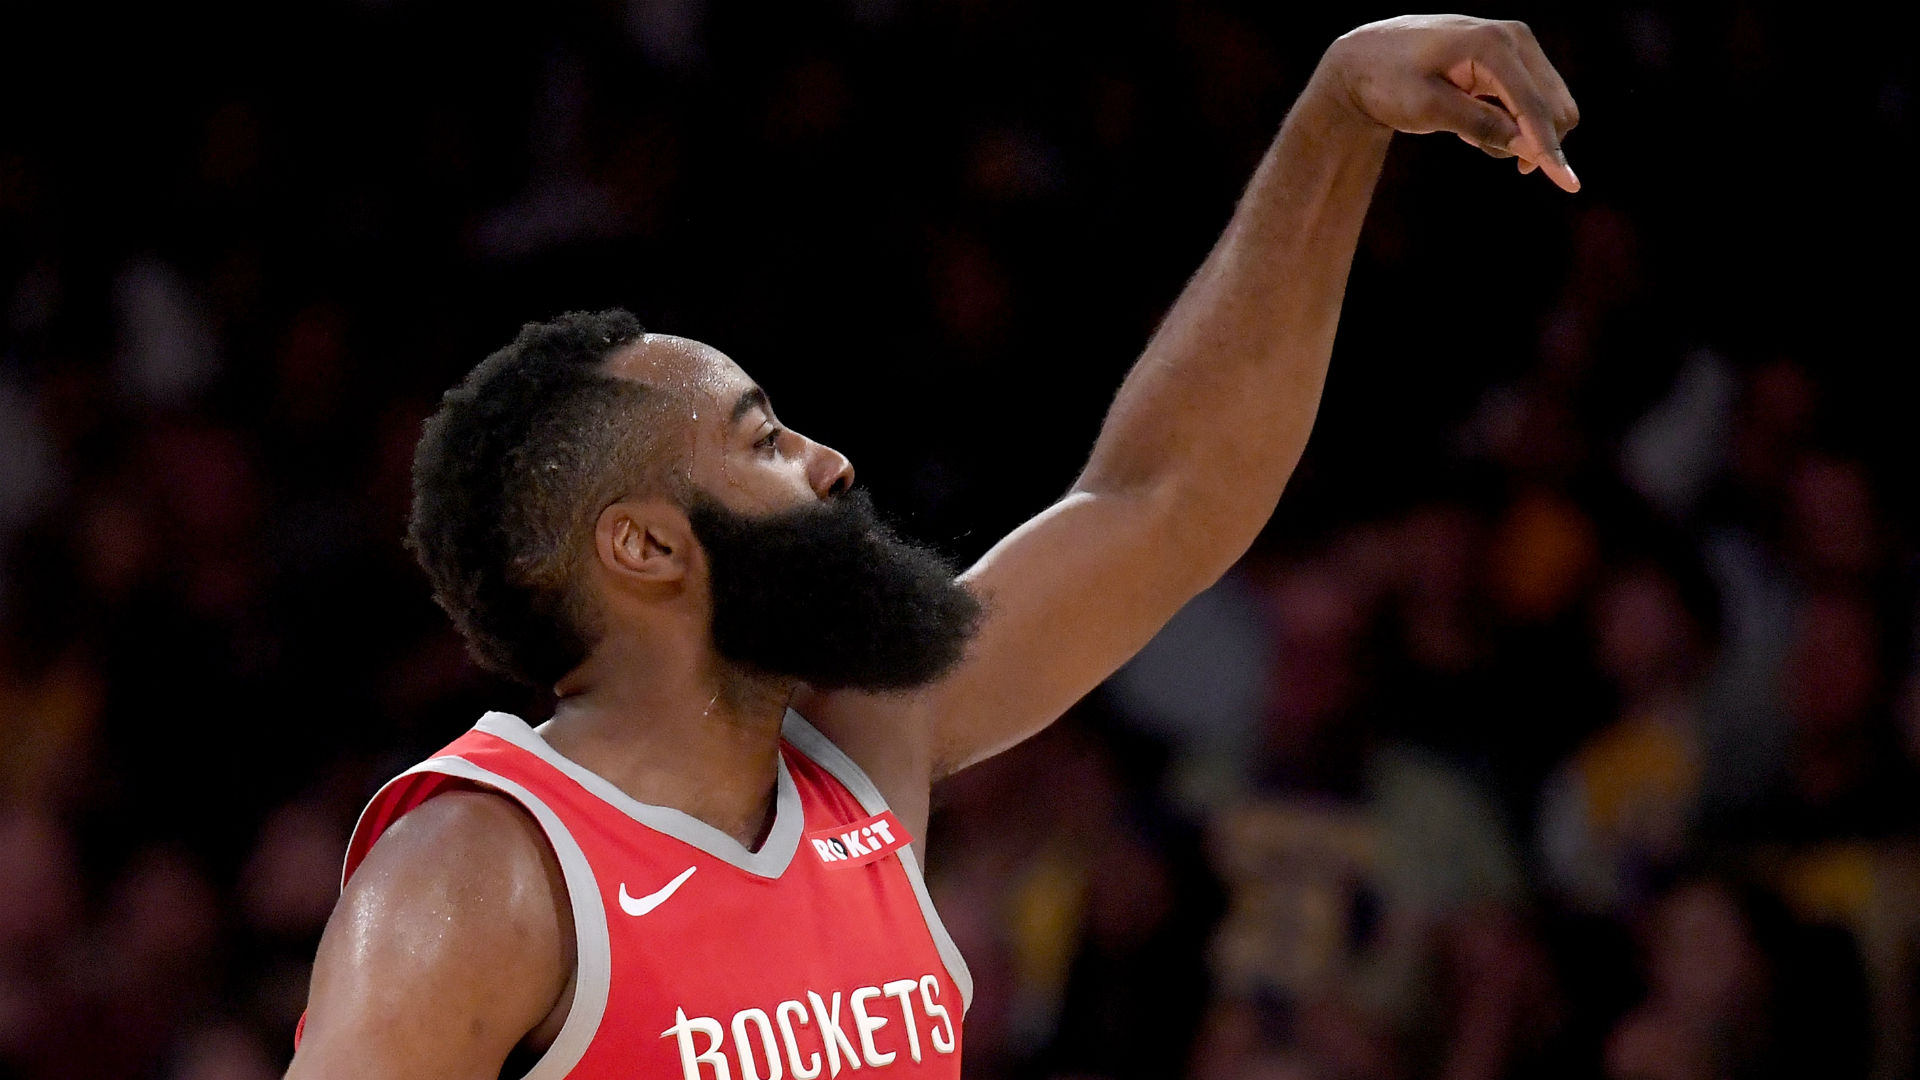 Walton has one goal for Lakers-Rockets matchup: Keep Harden under 50 points